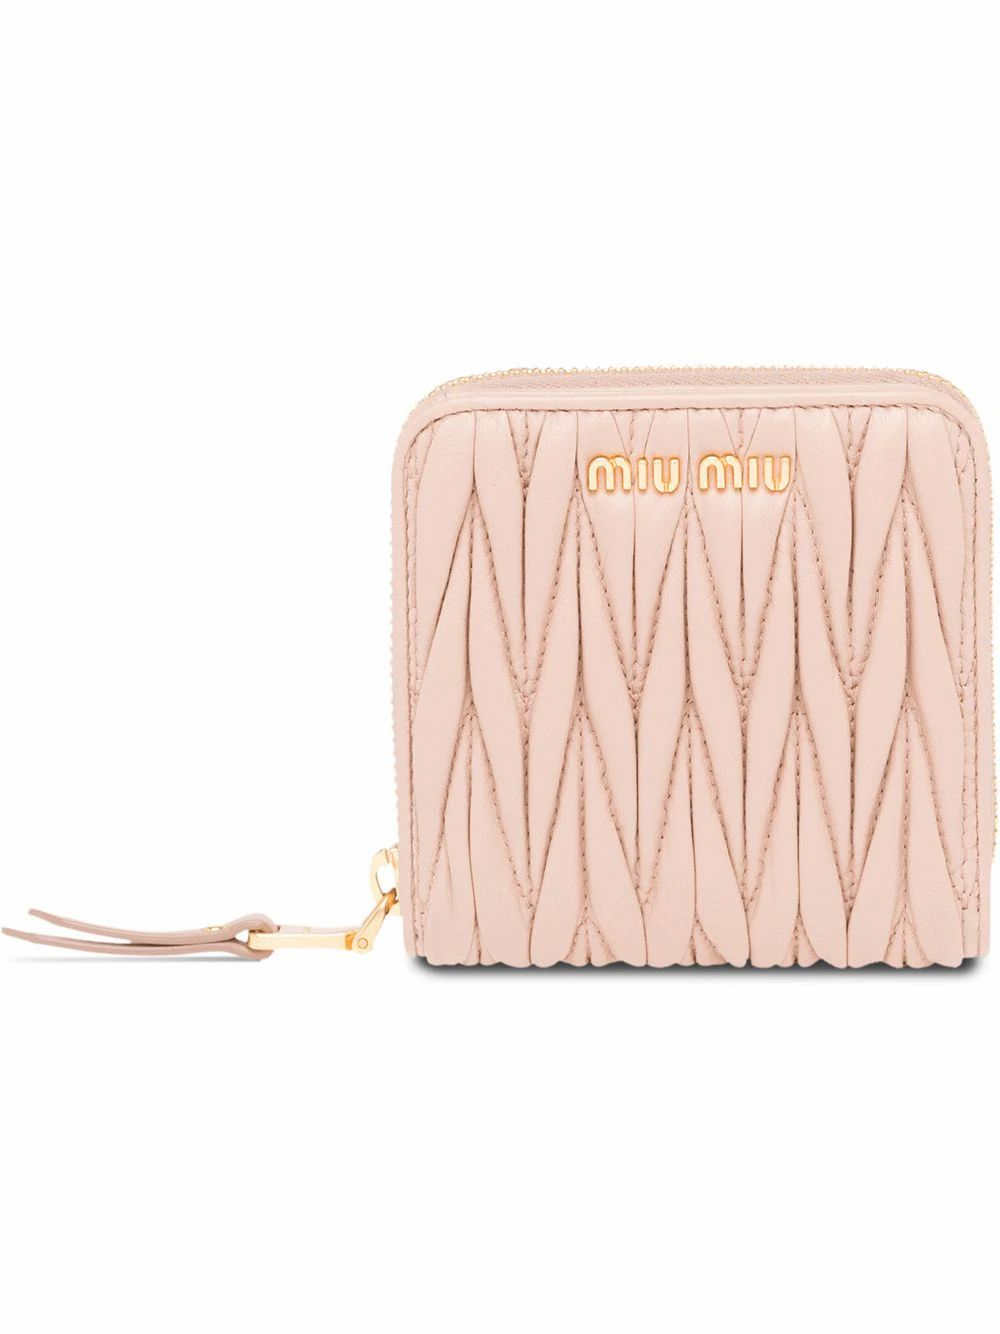 Miu Miu Bag accessorys MIU MIU WOMEN'S 5ML522N88F0770 BEIGE LEATHER WALLET